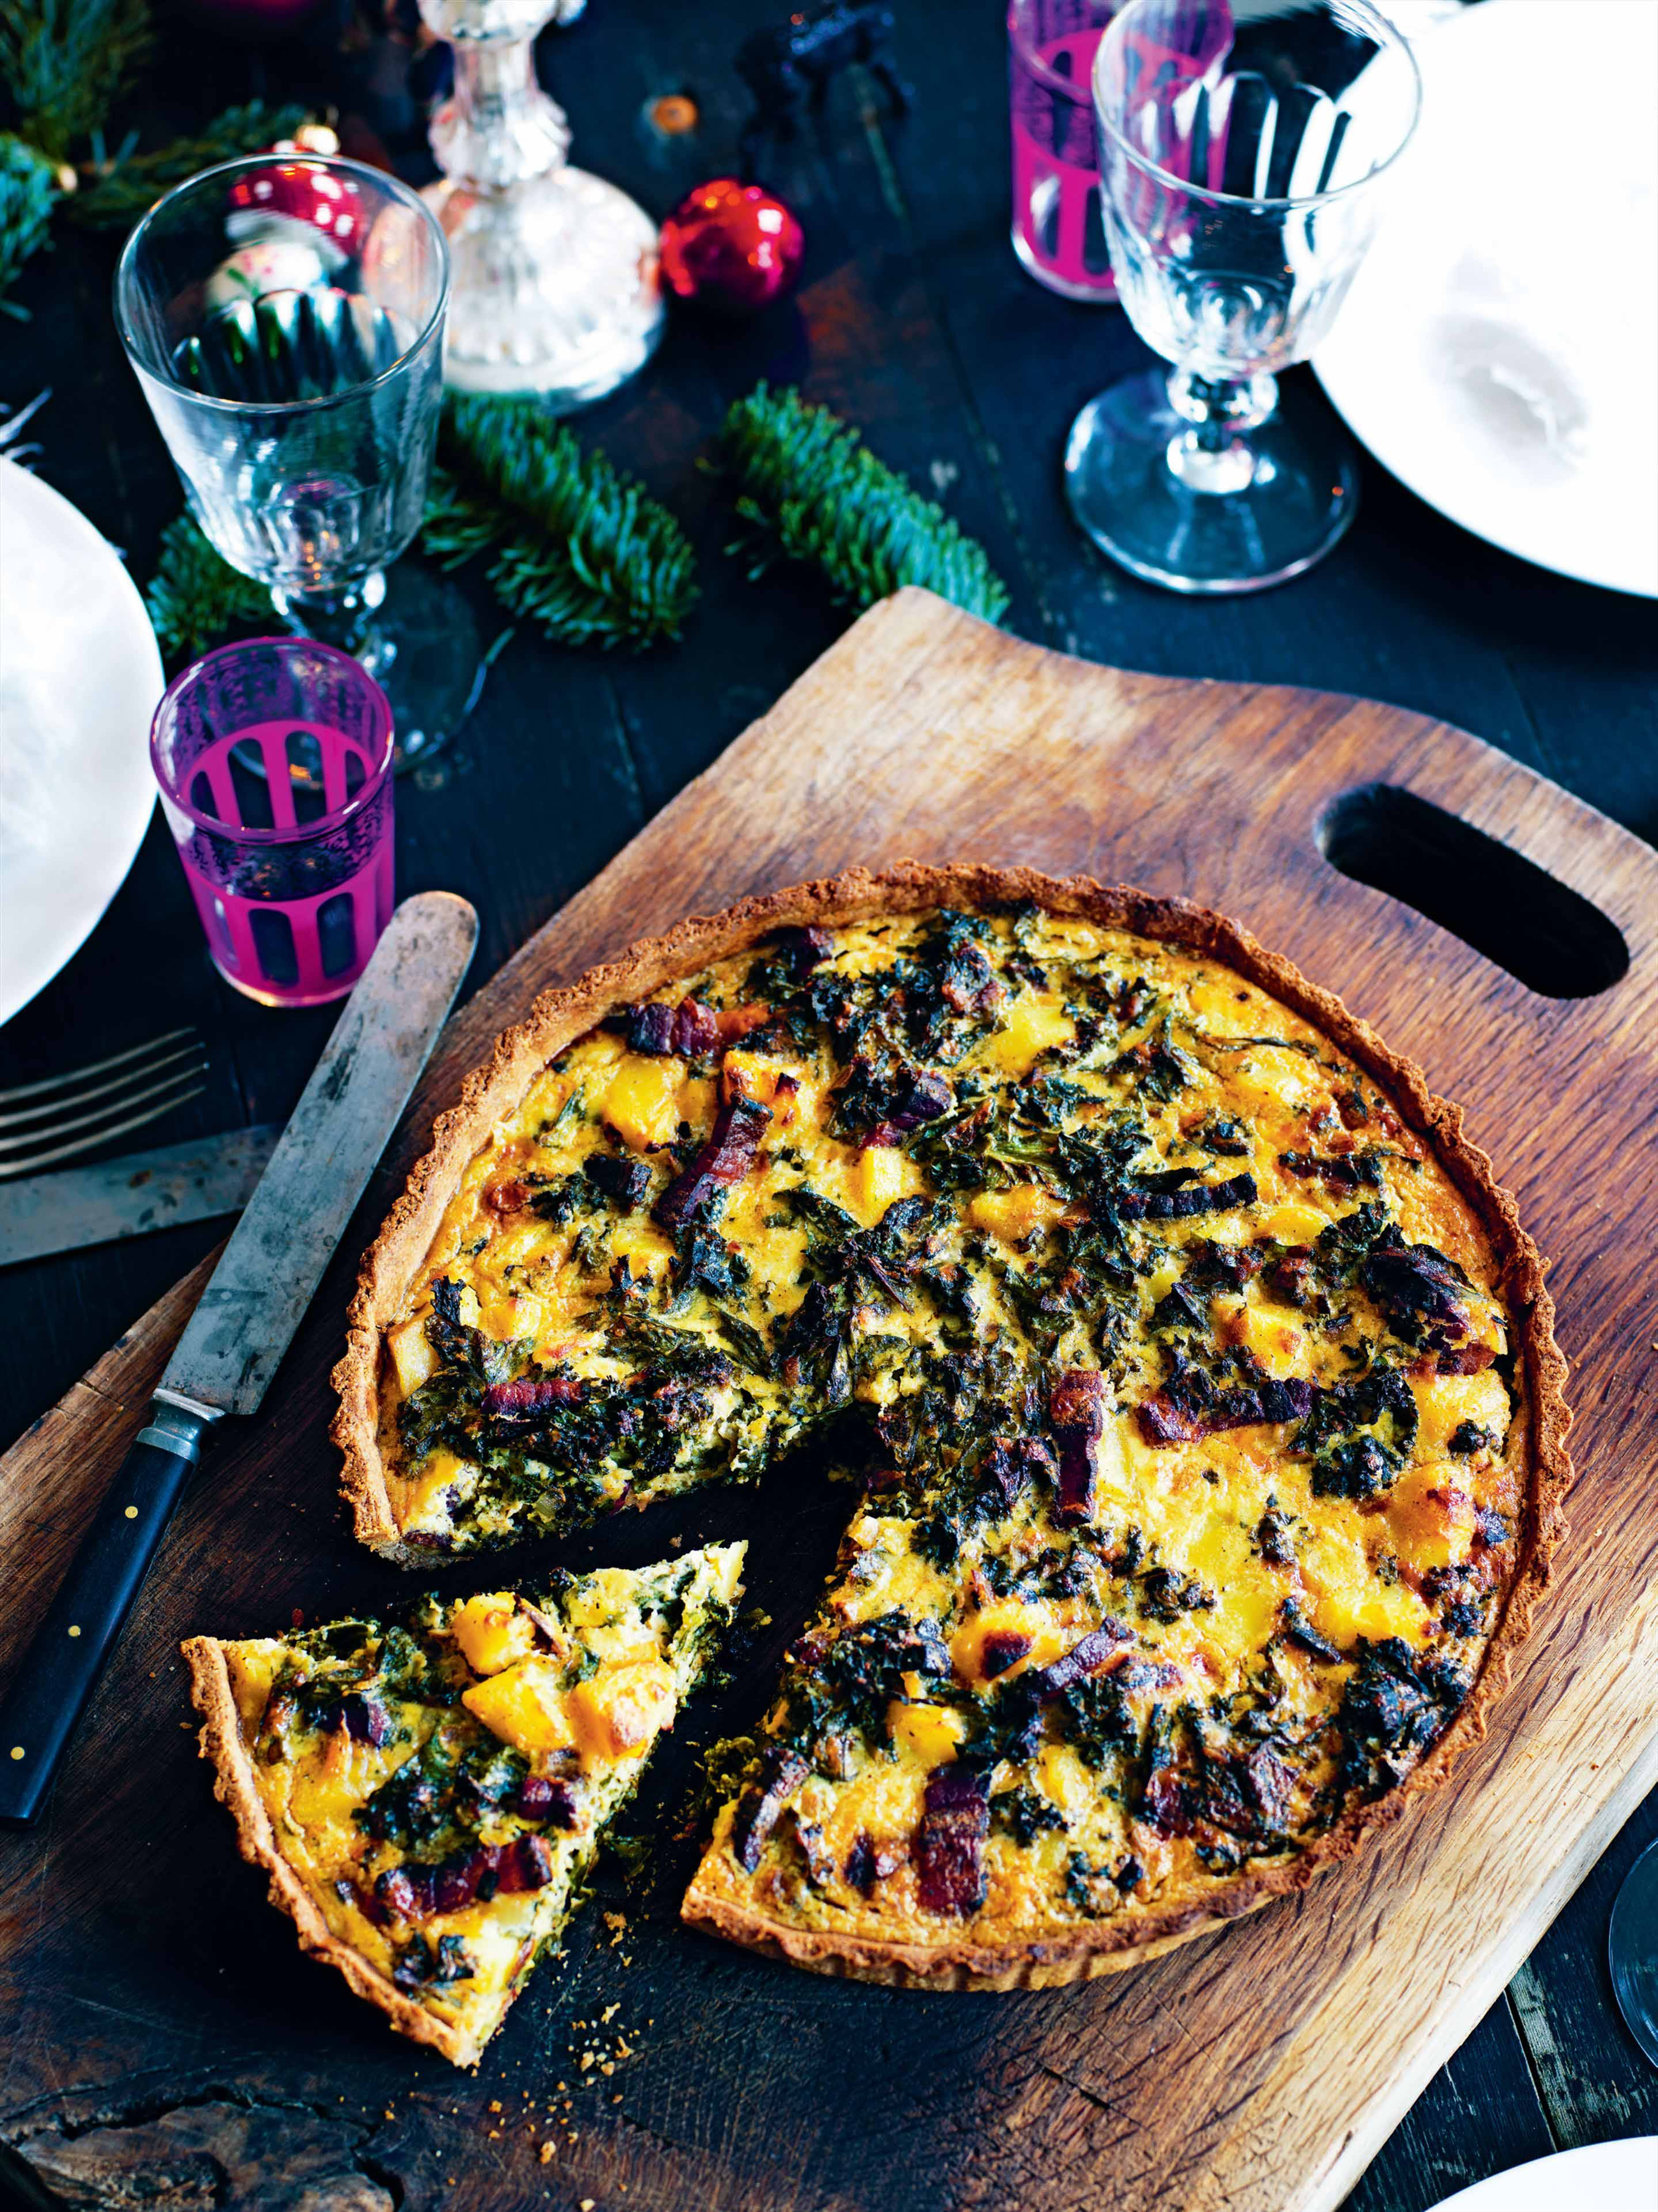 Kale and pancetta tart